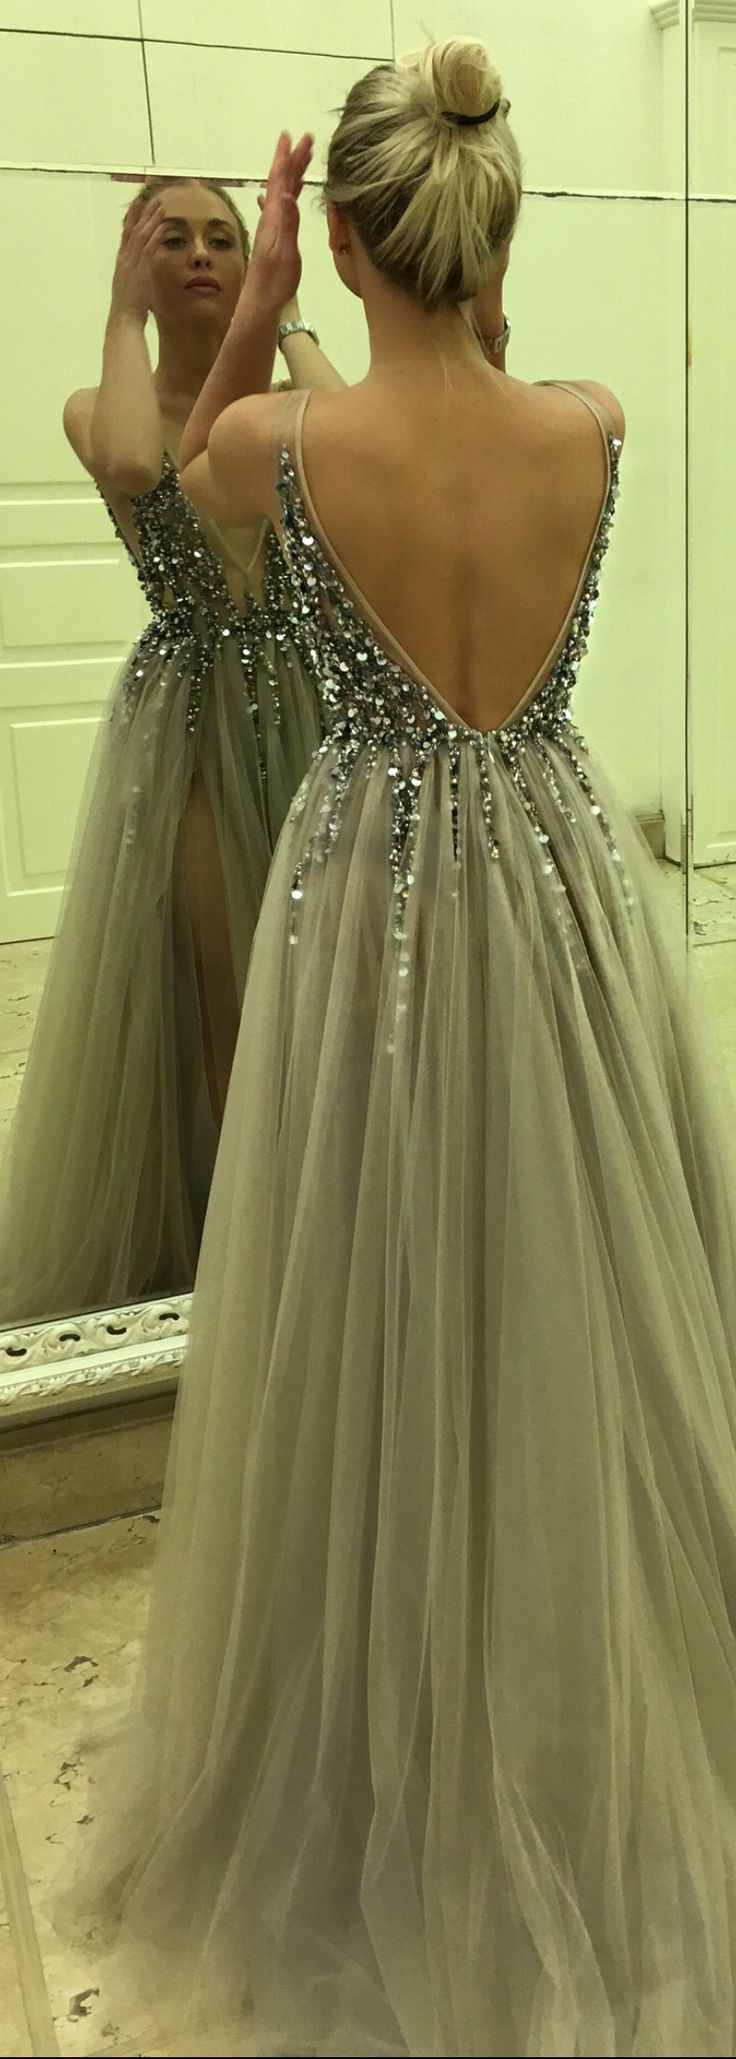 277 best images about Event Dresses on Pinterest | ASOS, Prom ...